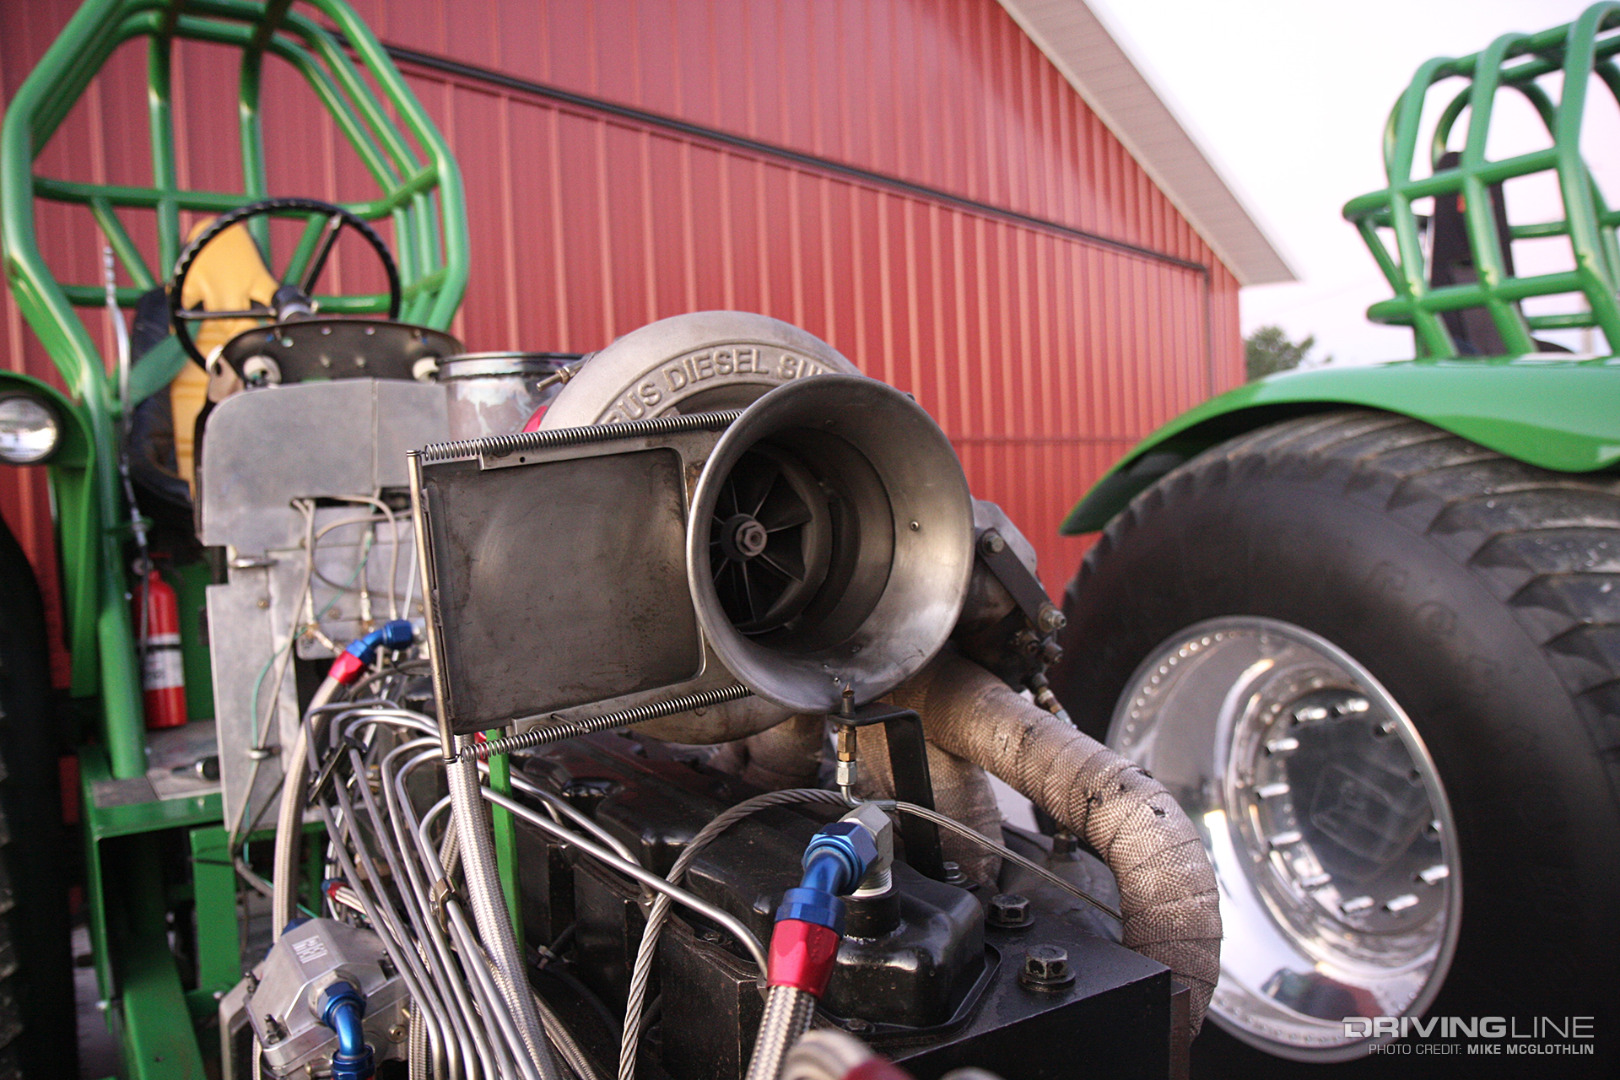 Anatomy of a Pro Stock Tractor | DrivingLine